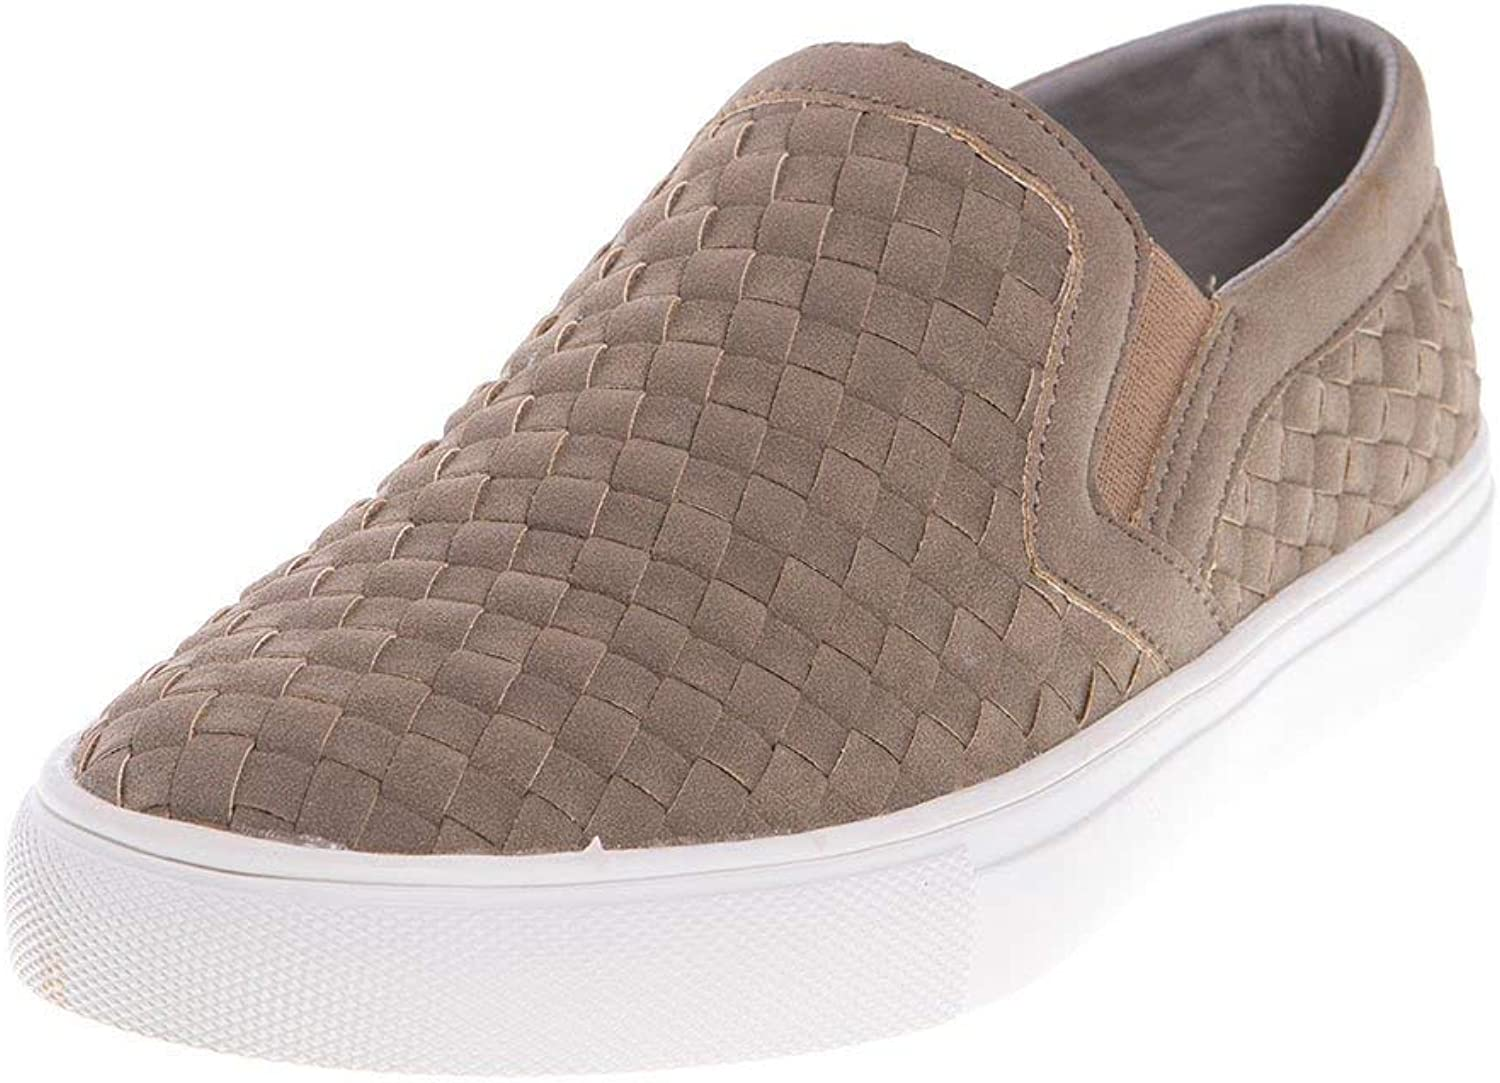 Corkys Women's Powder Slip-On shoes Taupe 10